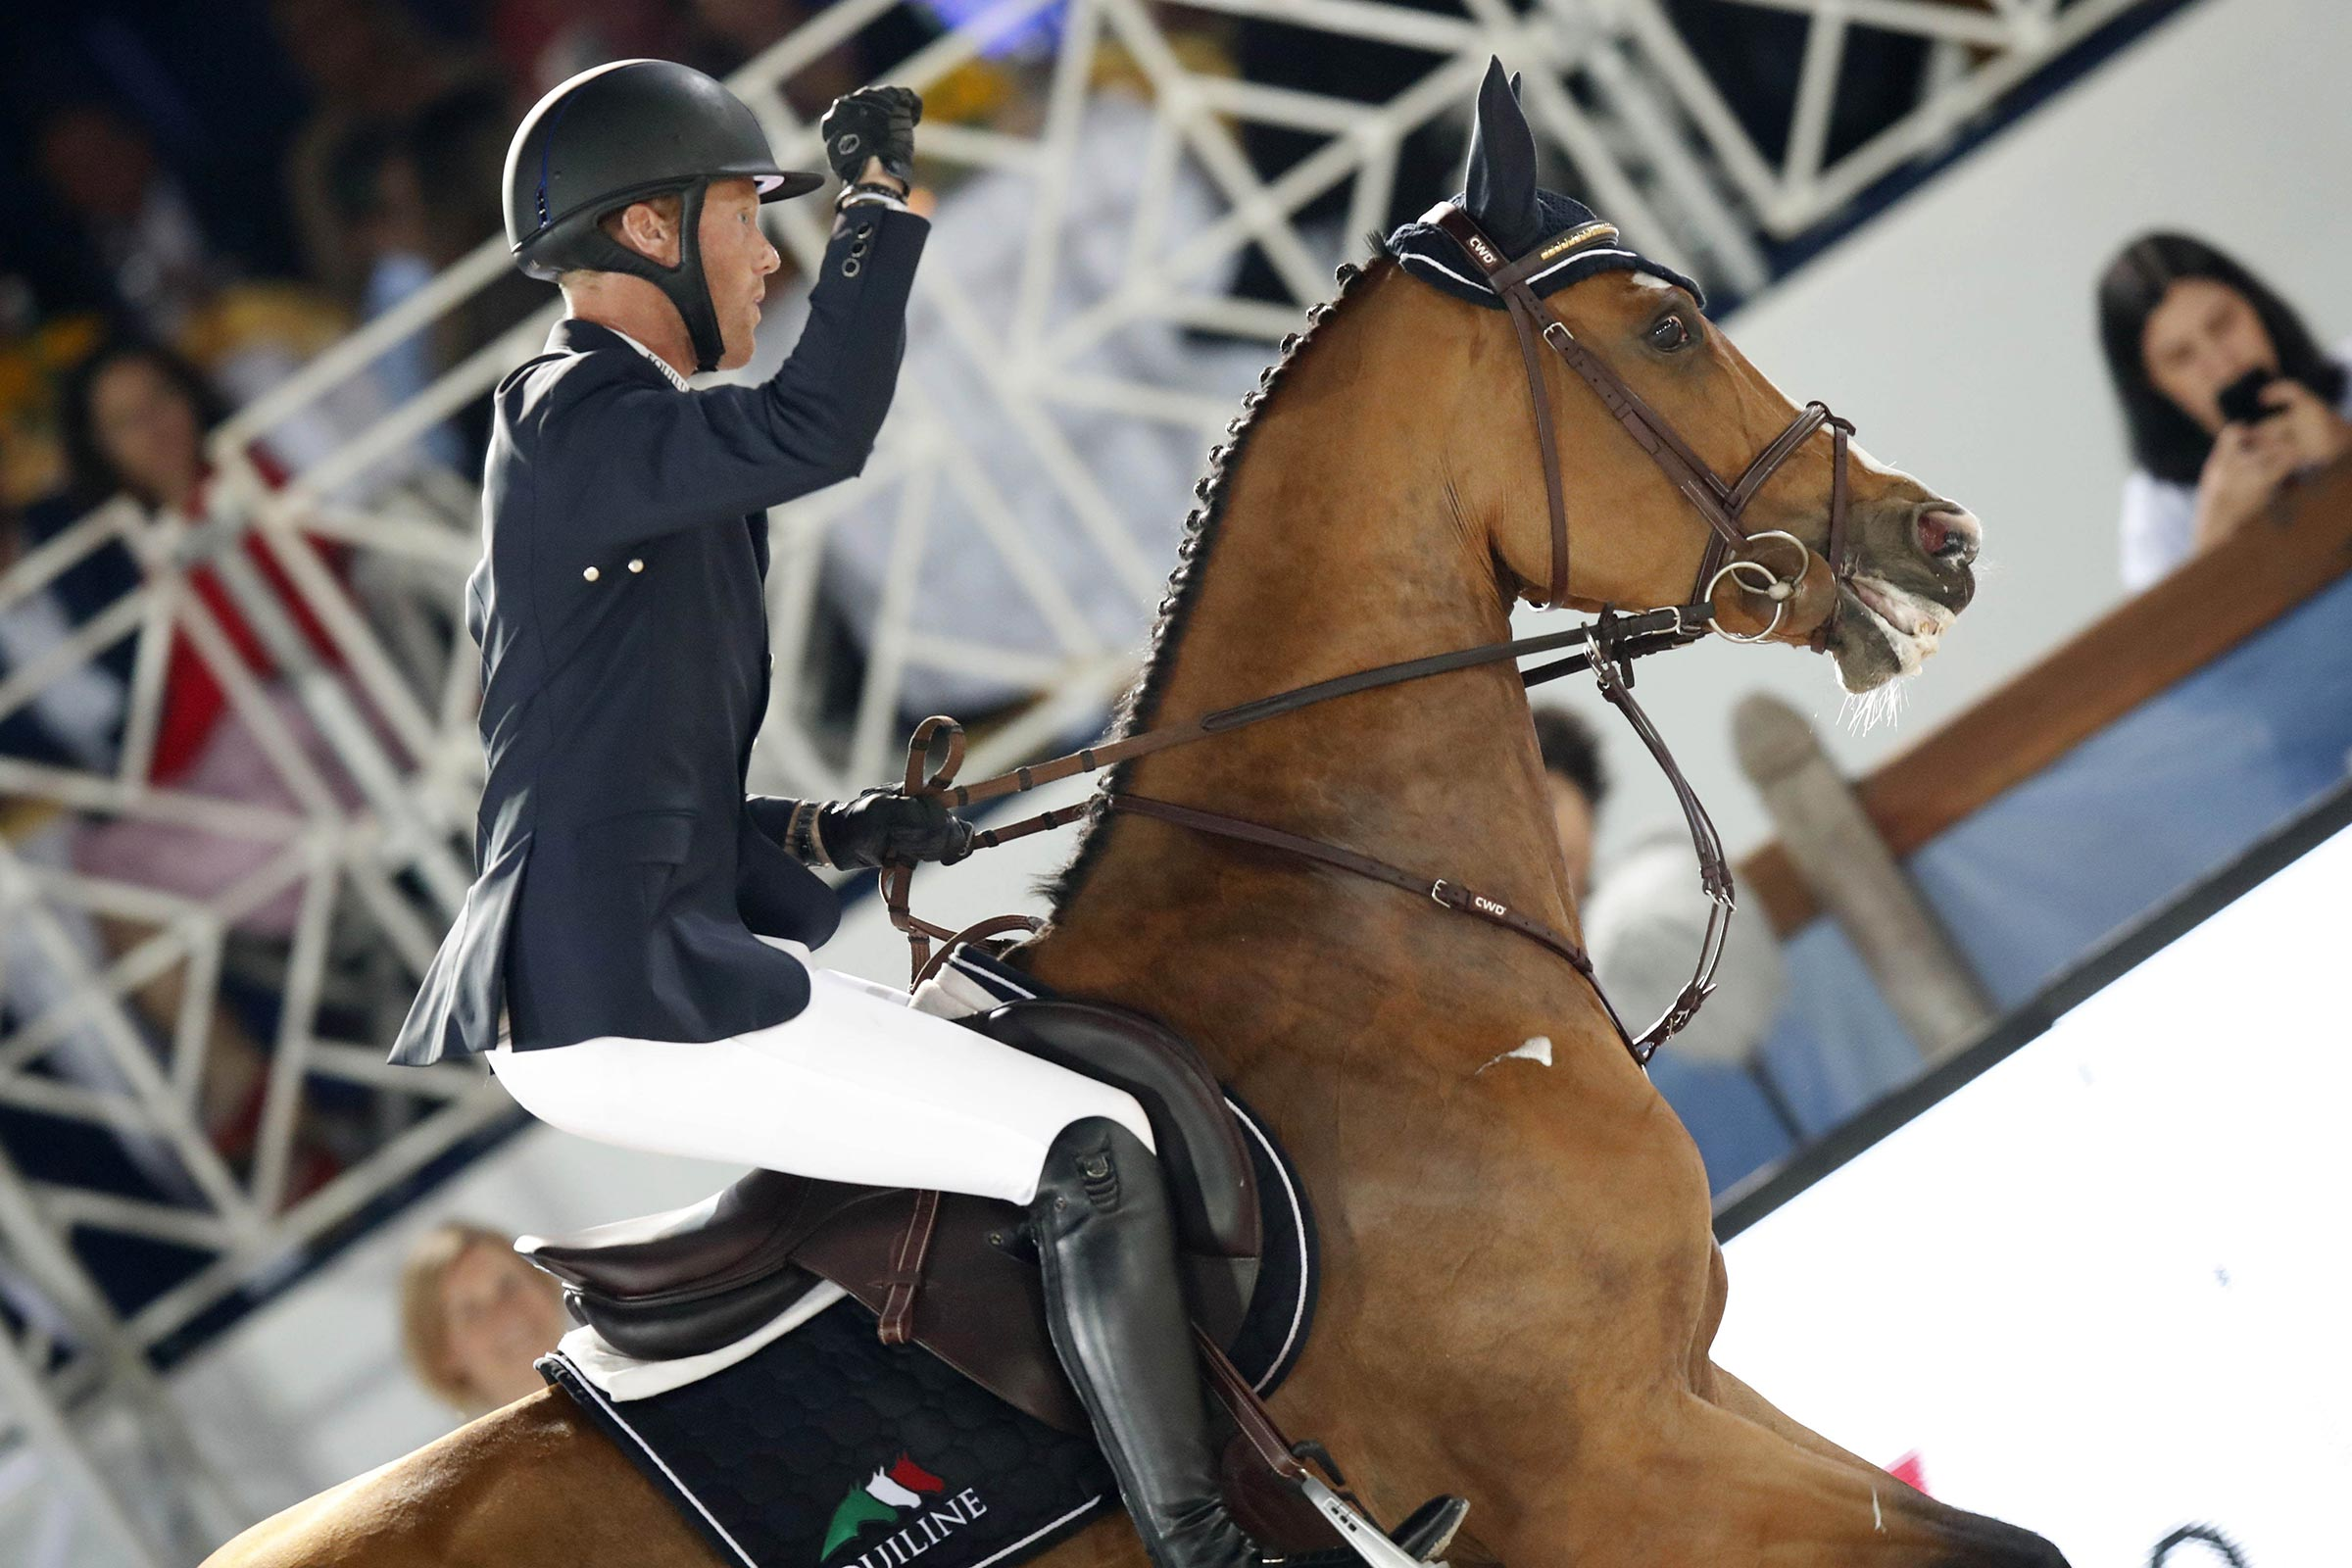 Niels Bruynseels on Gancia de Muze ph.Stefano Grasso/LGCT NIELS BRUYNSEELS GANCIA DE MUZE CLASS 15 CANNES 2019 CSI5* 1,60M - LONGINES GRAND PRIX CANNES 2019 DOWNLOAD